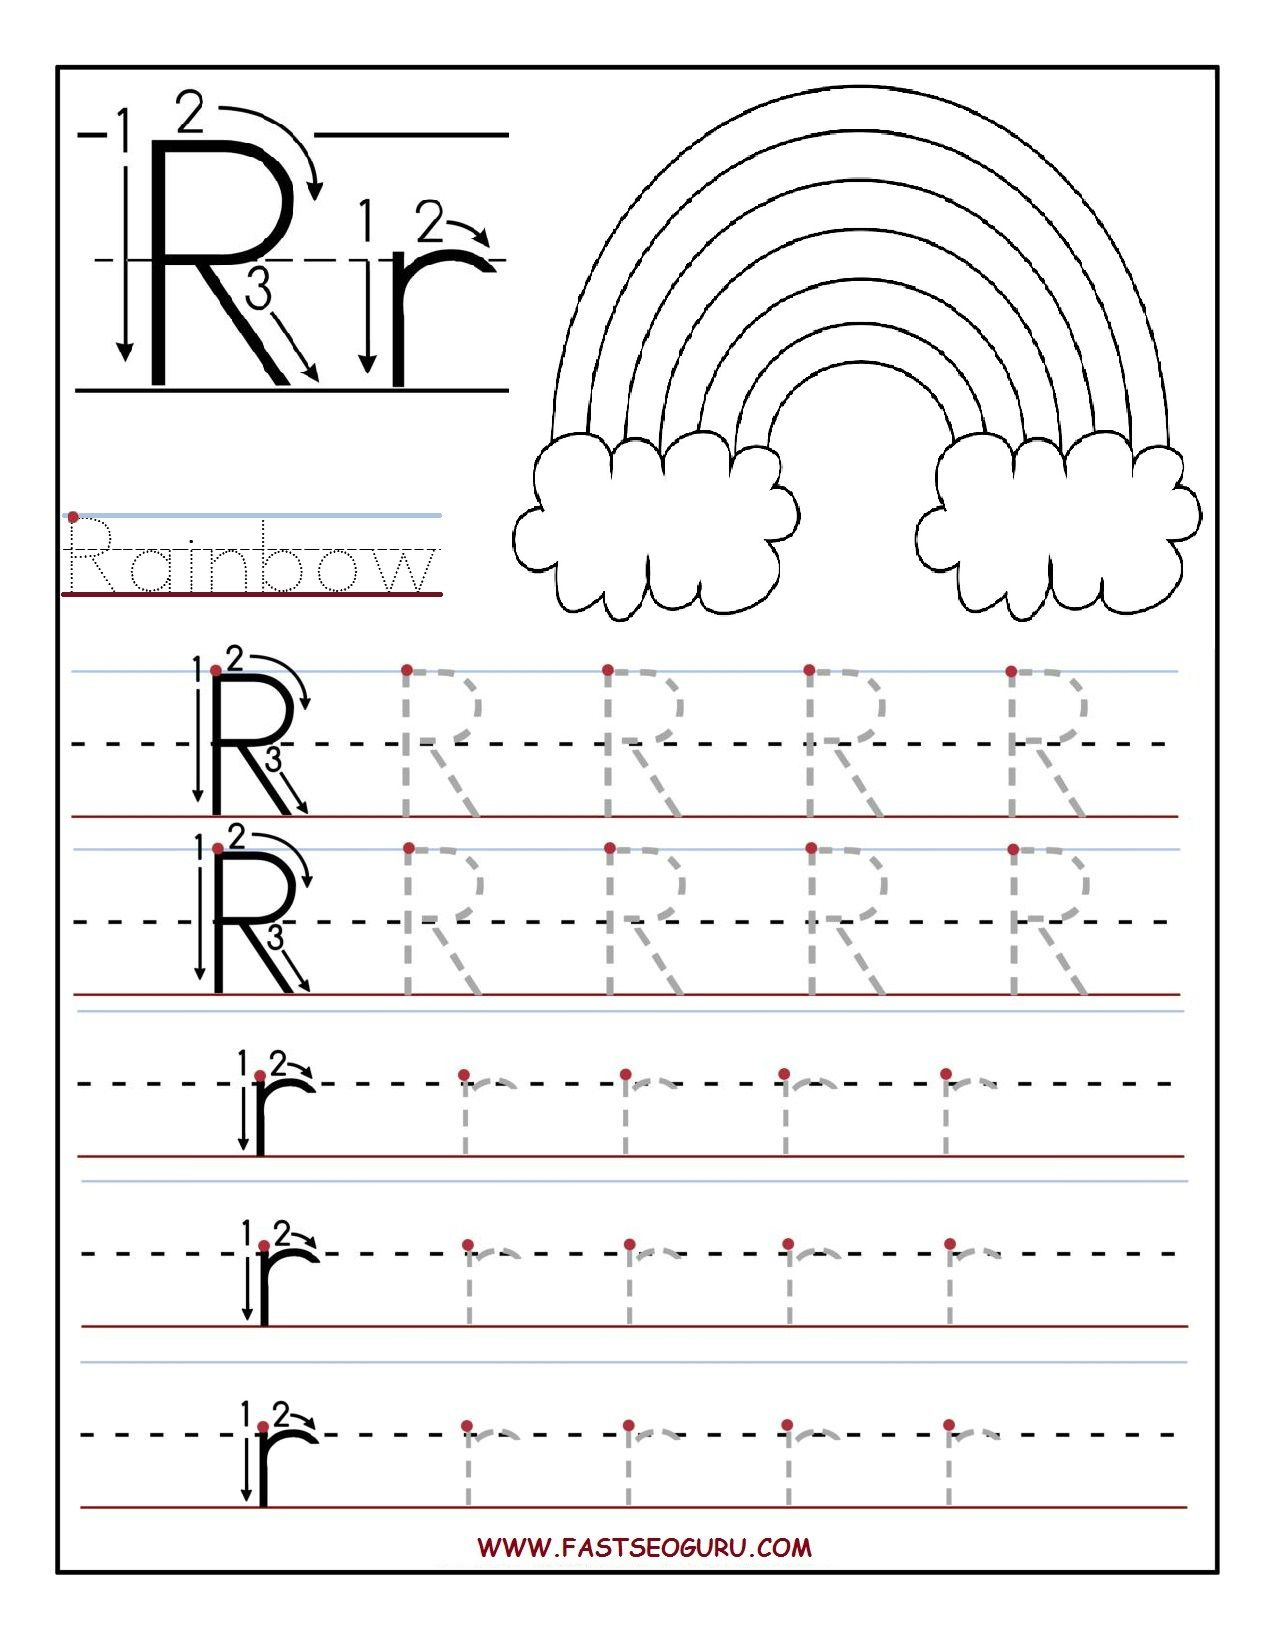 Printable Letter R Tracing Worksheets For Preschool | 파닉스 for Letter R Tracing Paper